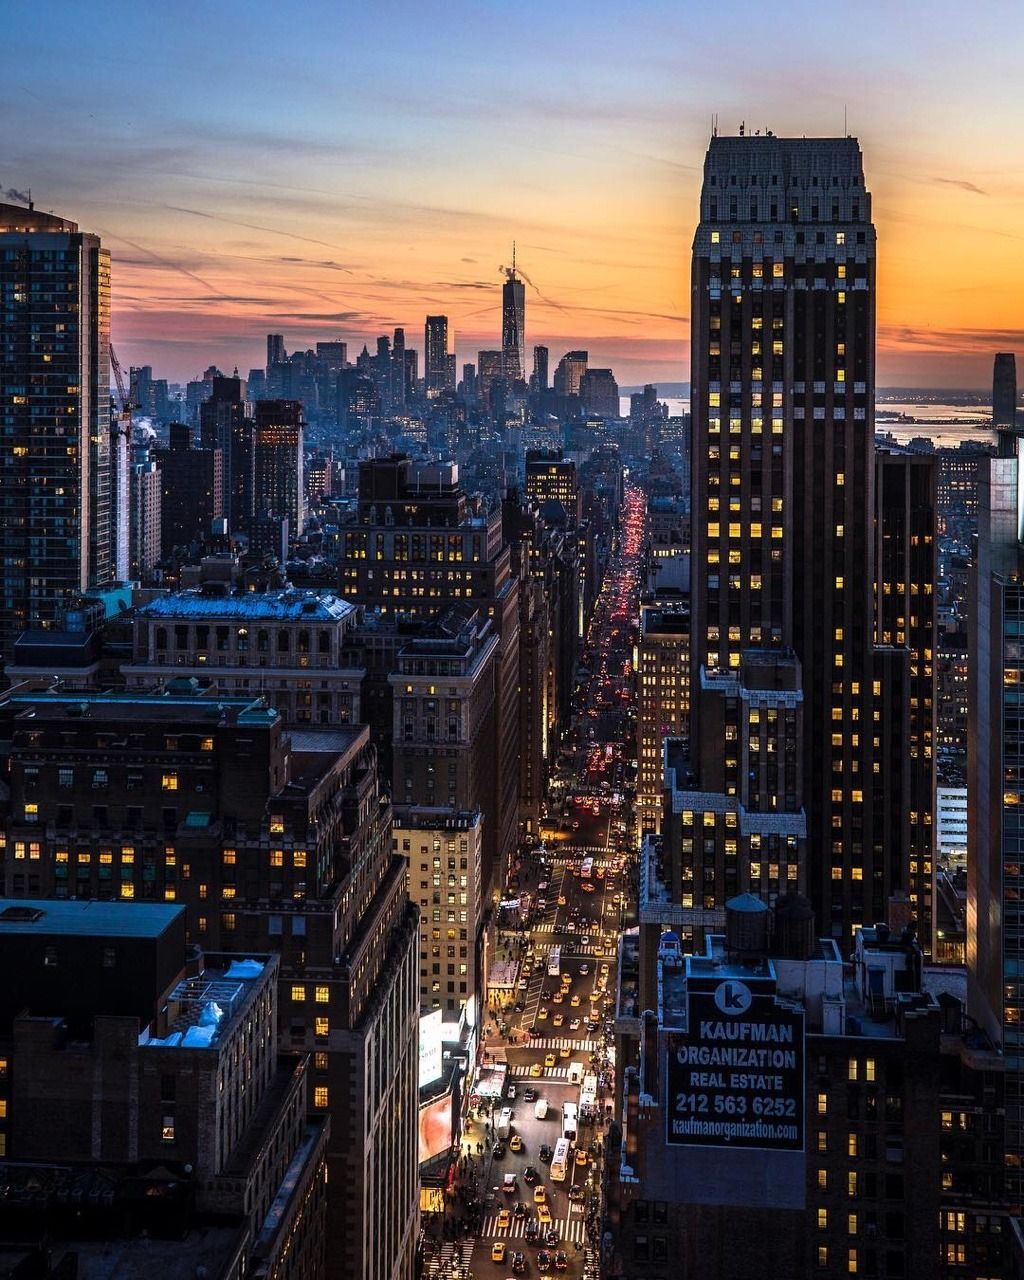 New York City At Sunset By @CraigsBeds